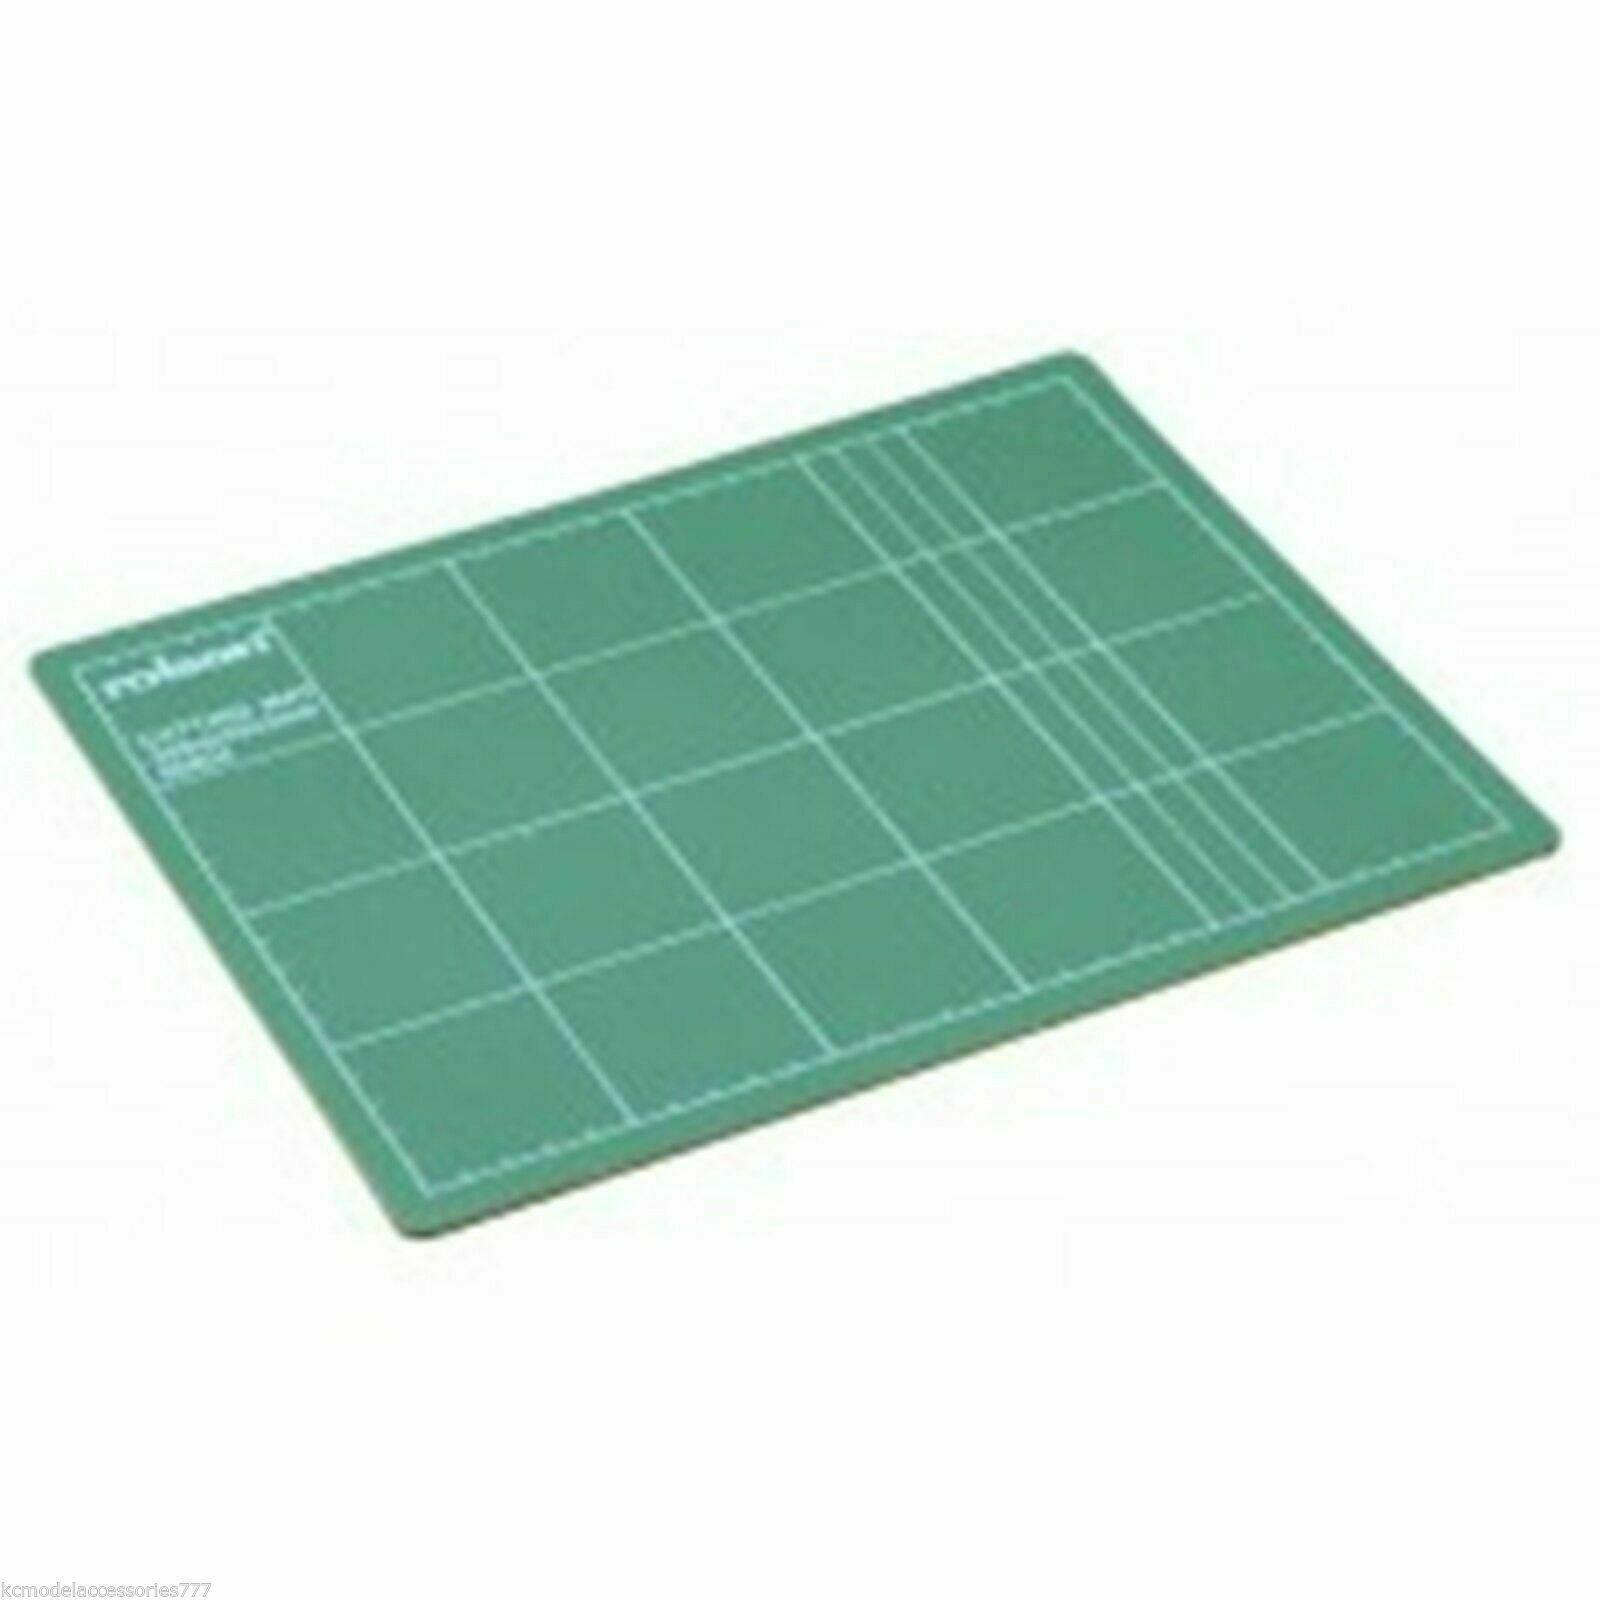 A4 cutting mat self healing printed grids lines crafts for Cutting mat for crafts